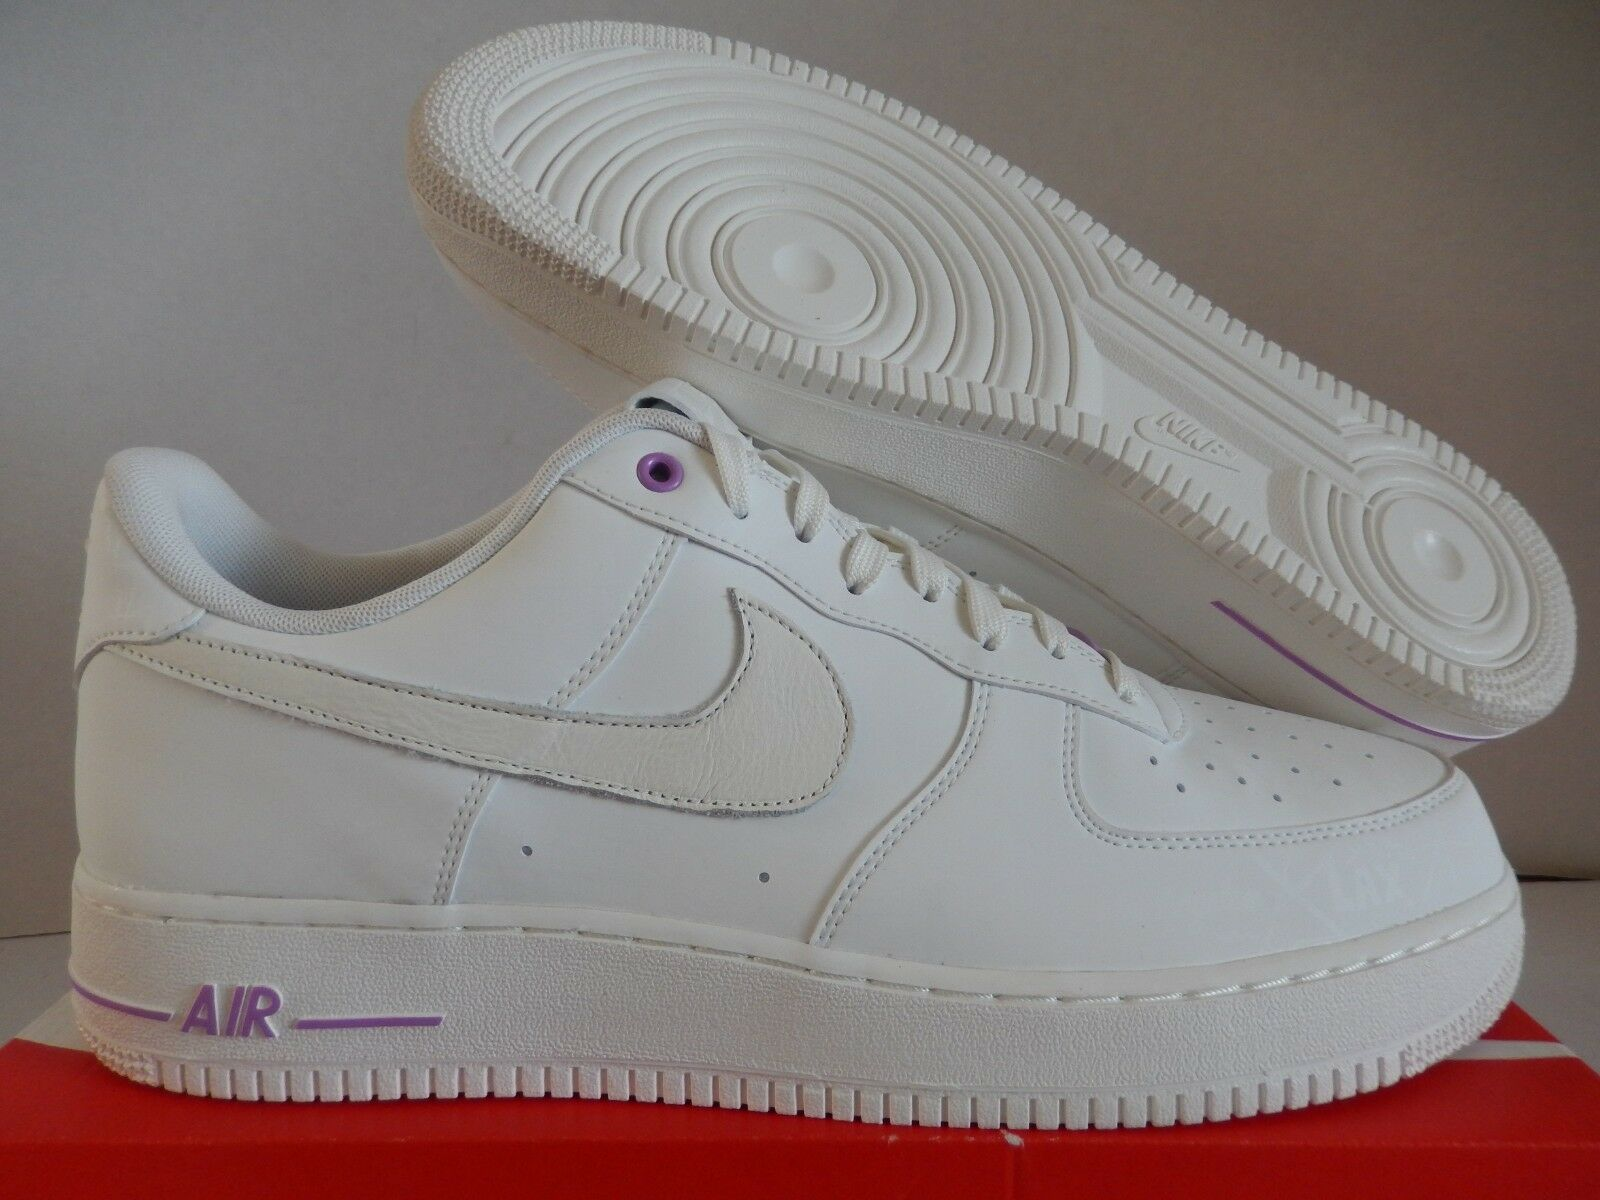 NIKE AIR FORCE 1 LOW ID PREMIUM LA CITY PACK LASER OFF WHITE SZ 14 [AR3870-992]